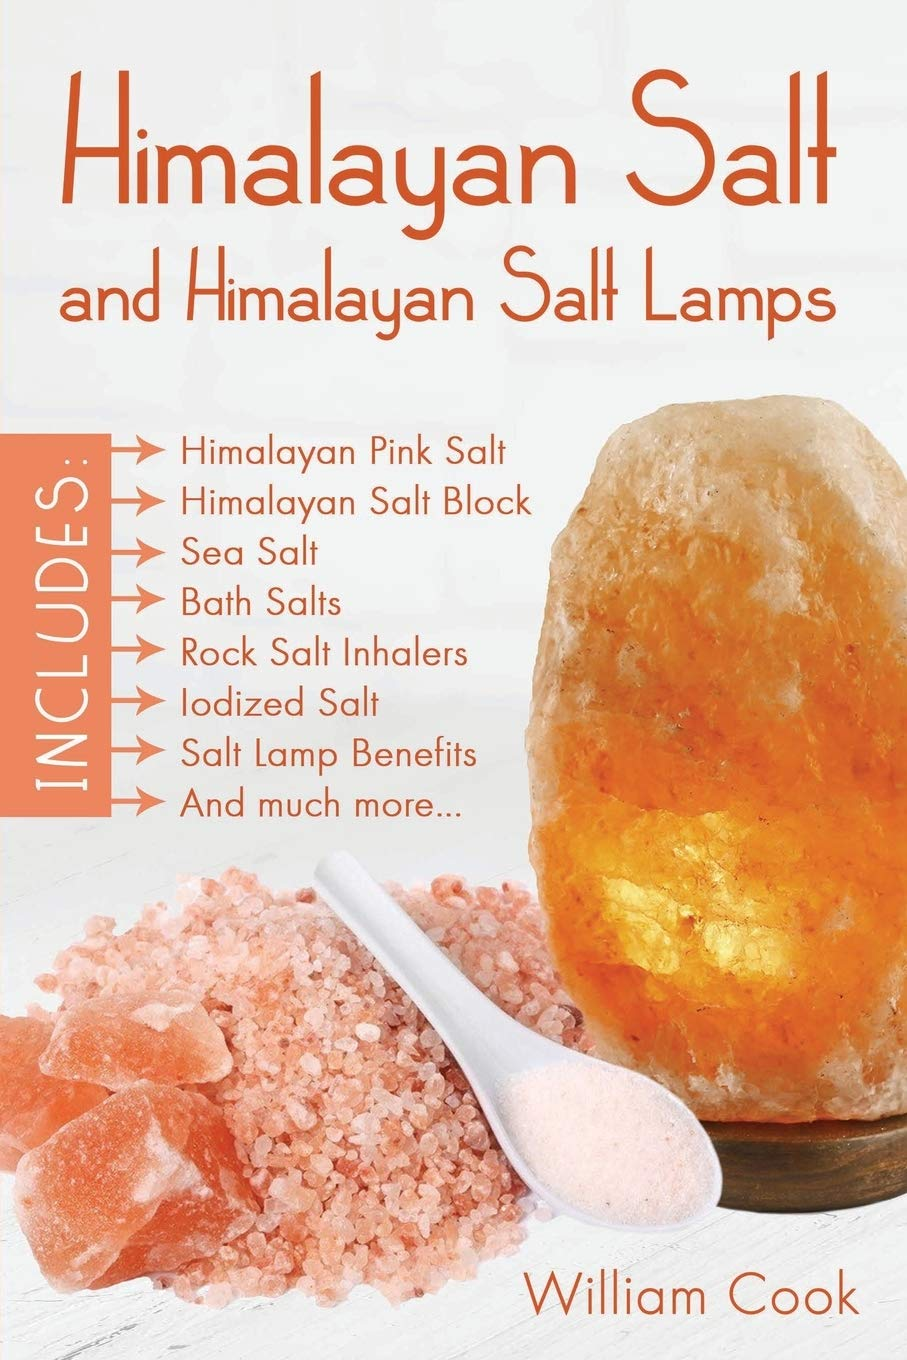 Himalayan Salt Lamps Are Helping People